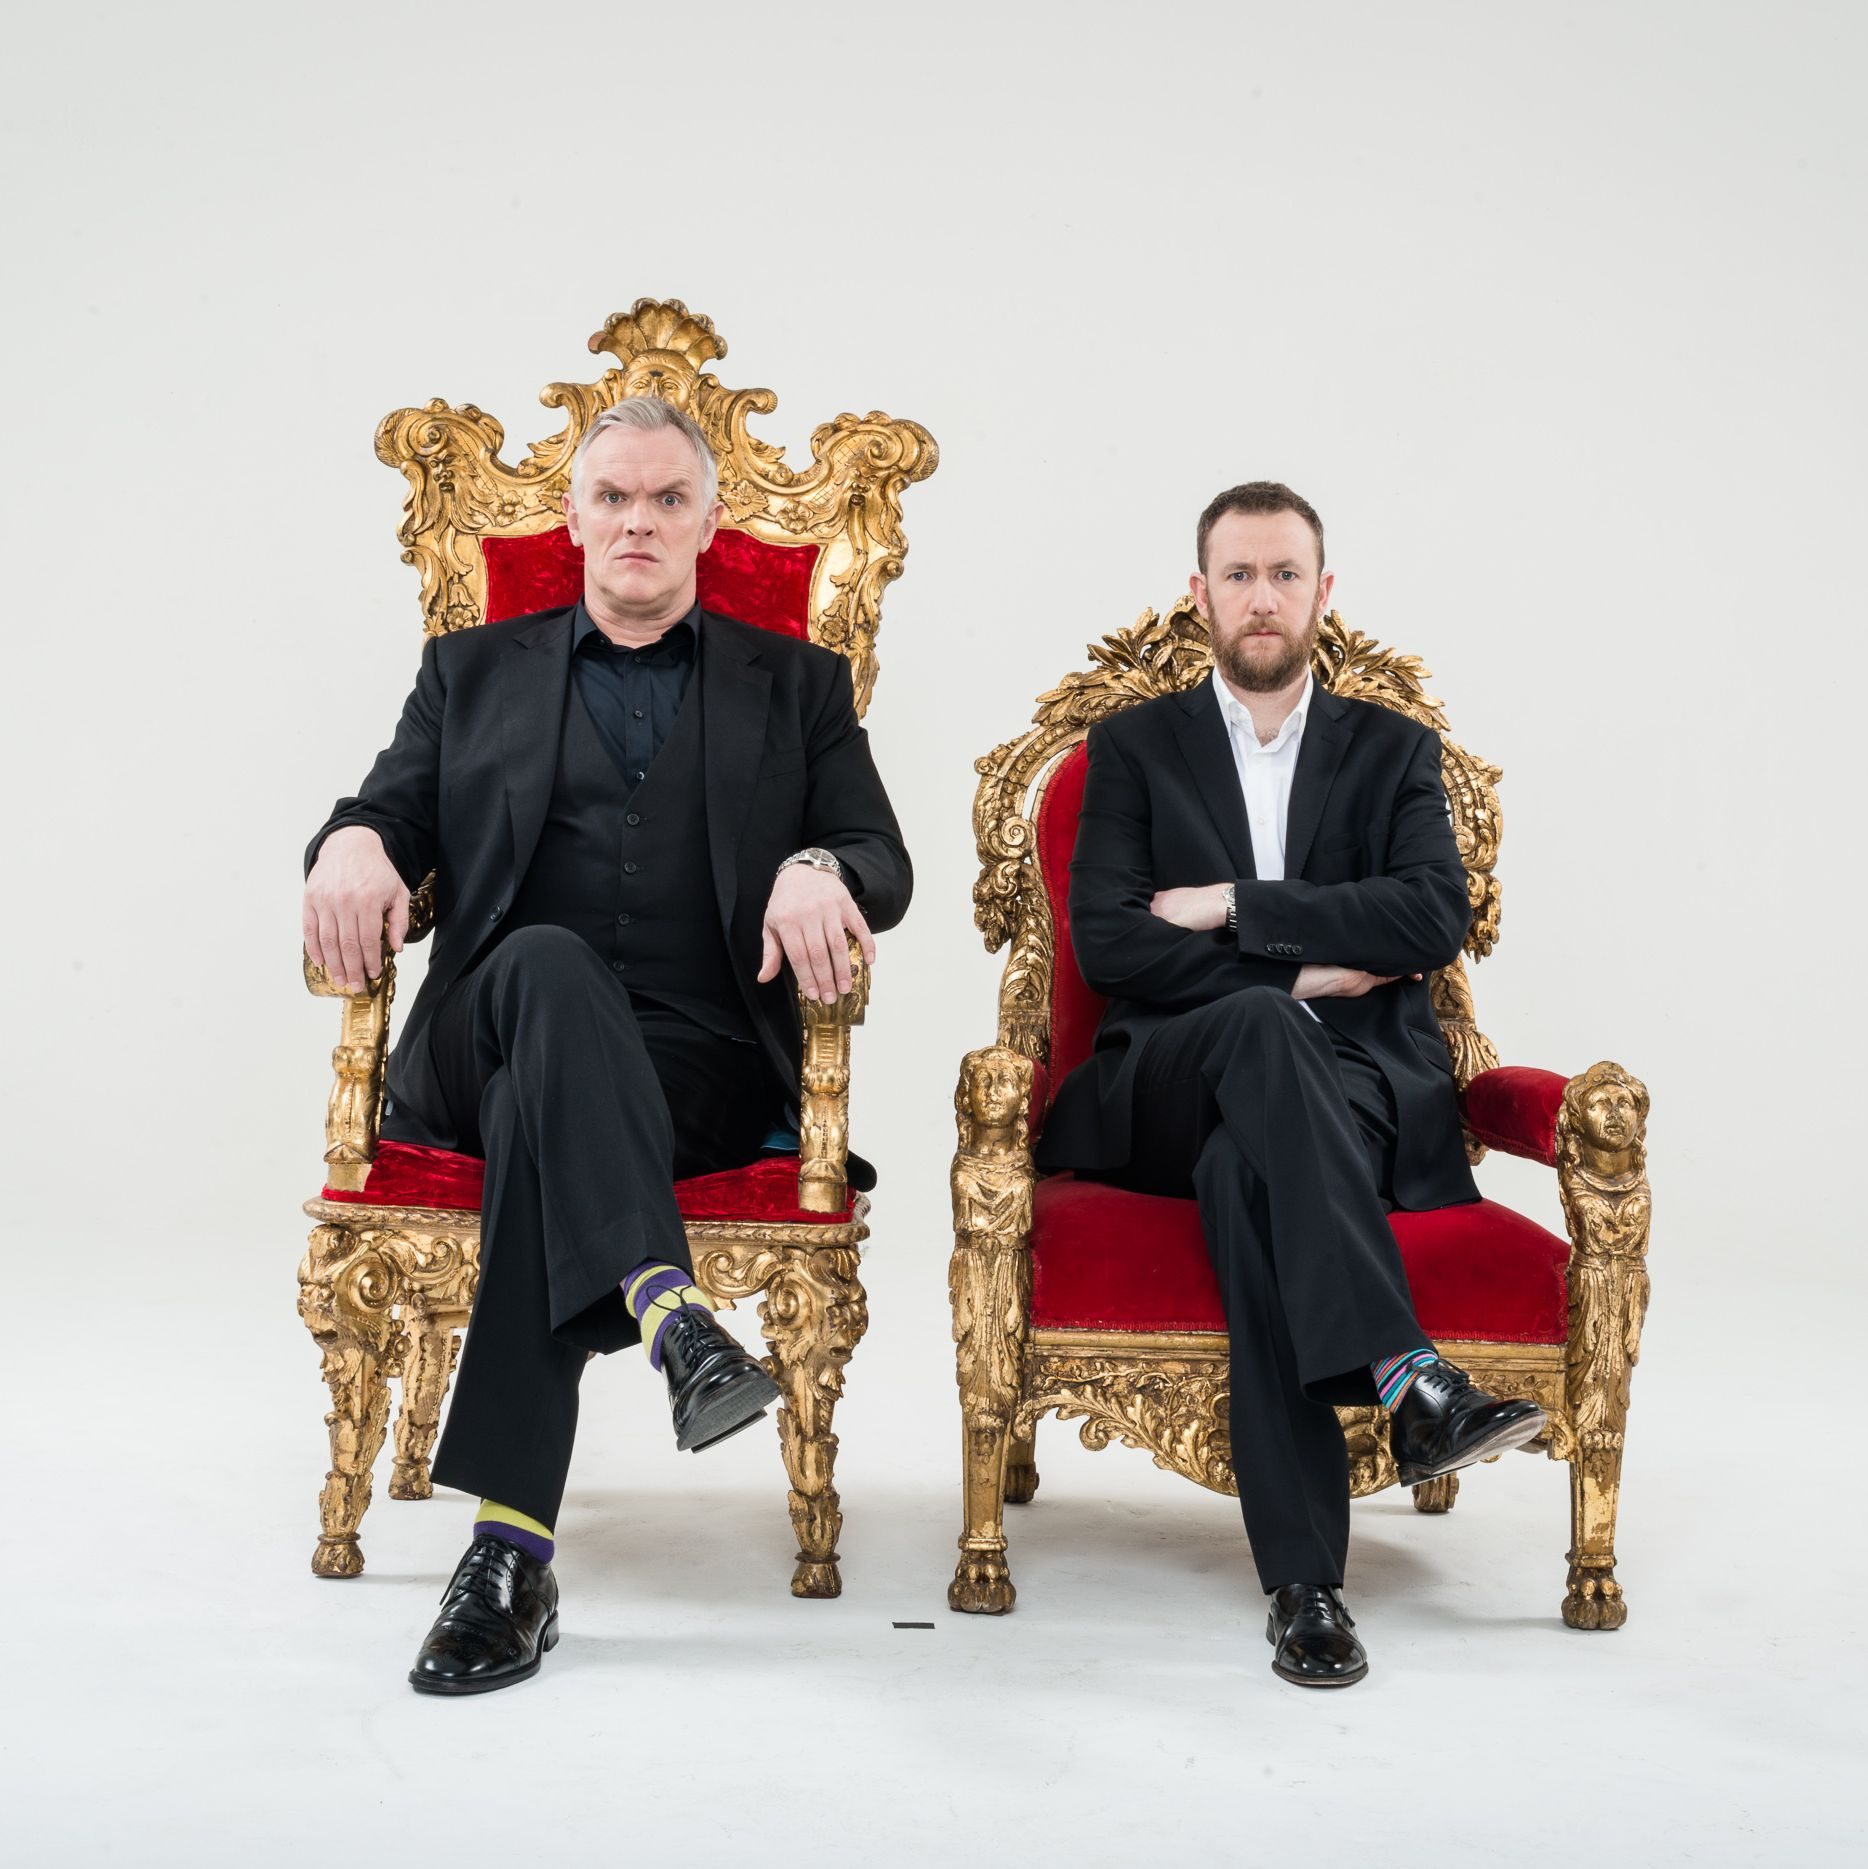 The Chase, Inbetweeners and Love Island stars join Taskmaster's series 8 line-up